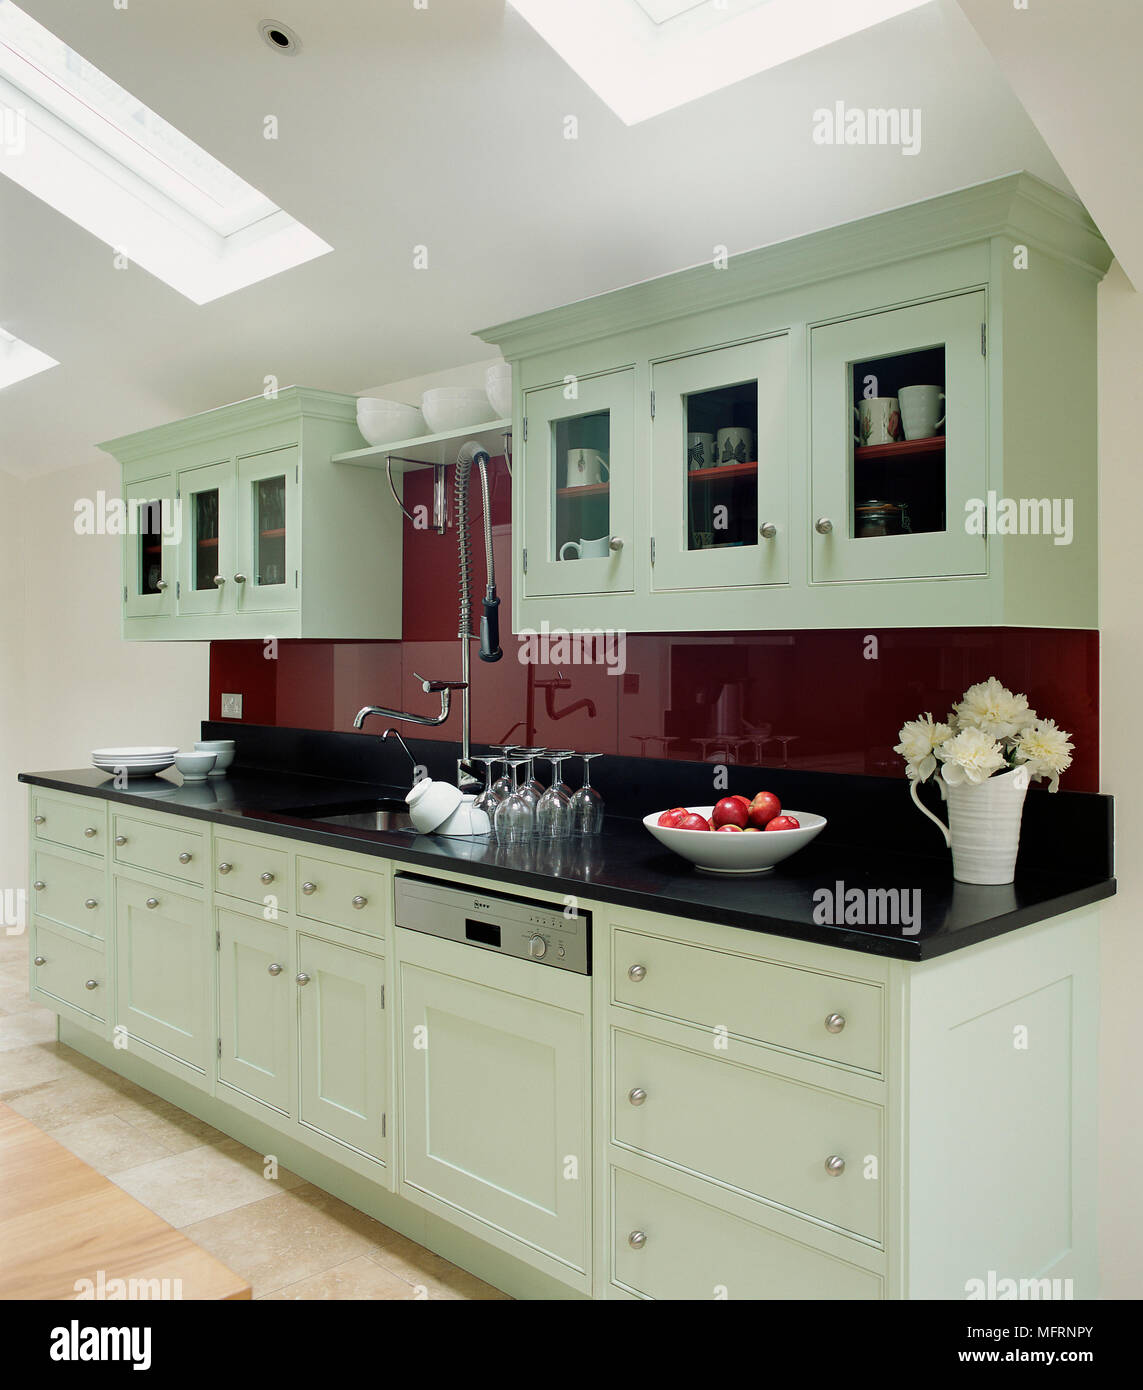 Pale Green Kitchen Units: Modern Country Style Kitchen With Black Worktop And Pale